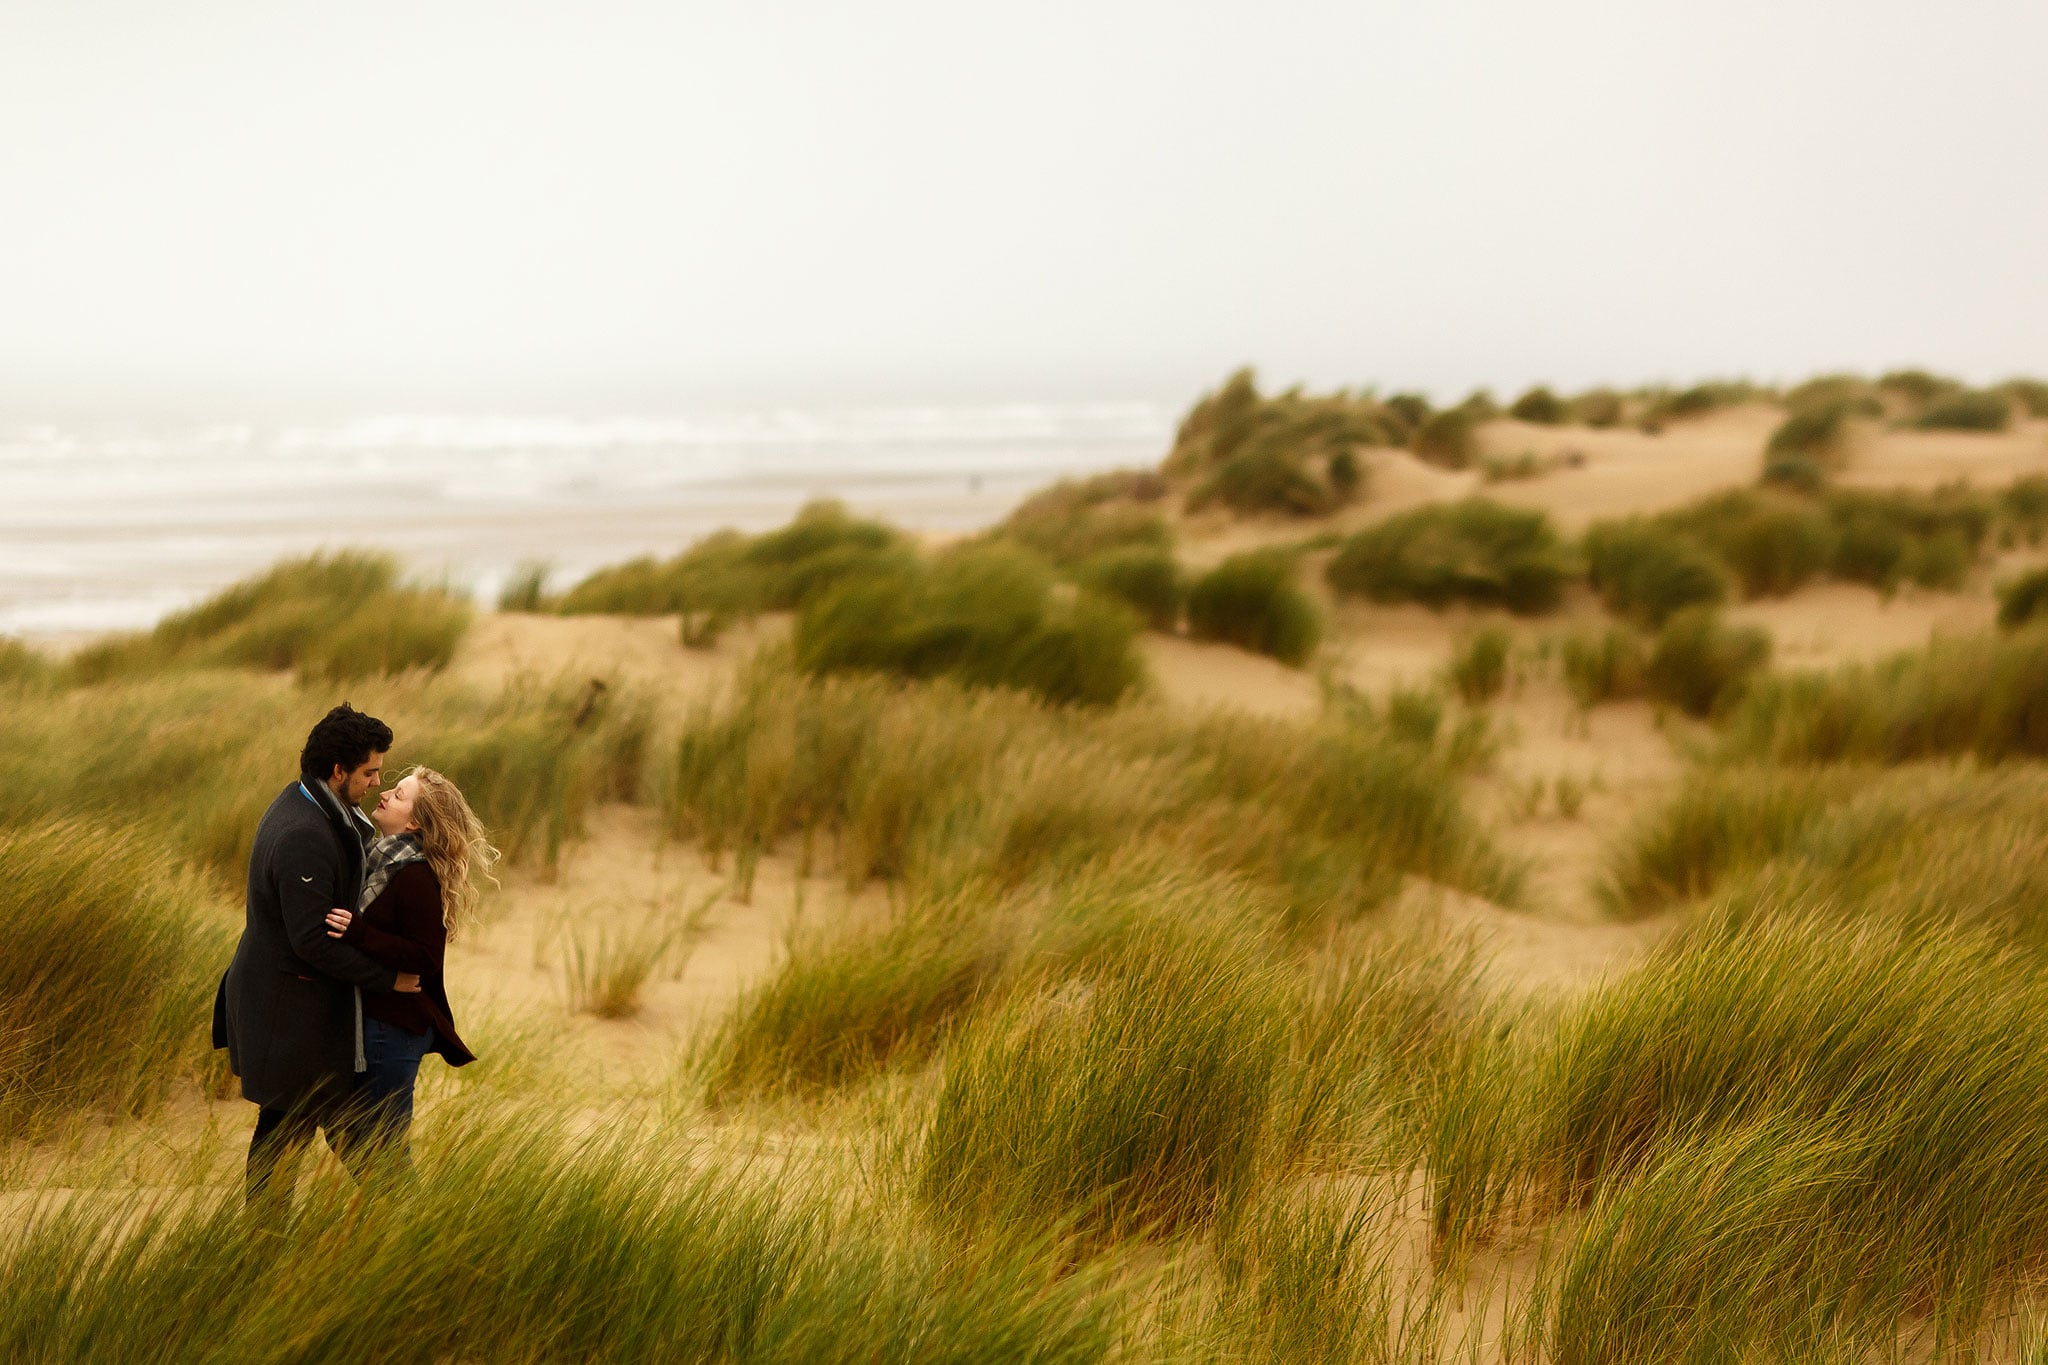 Autumn engagement shoot on the beach in the sand dunes.